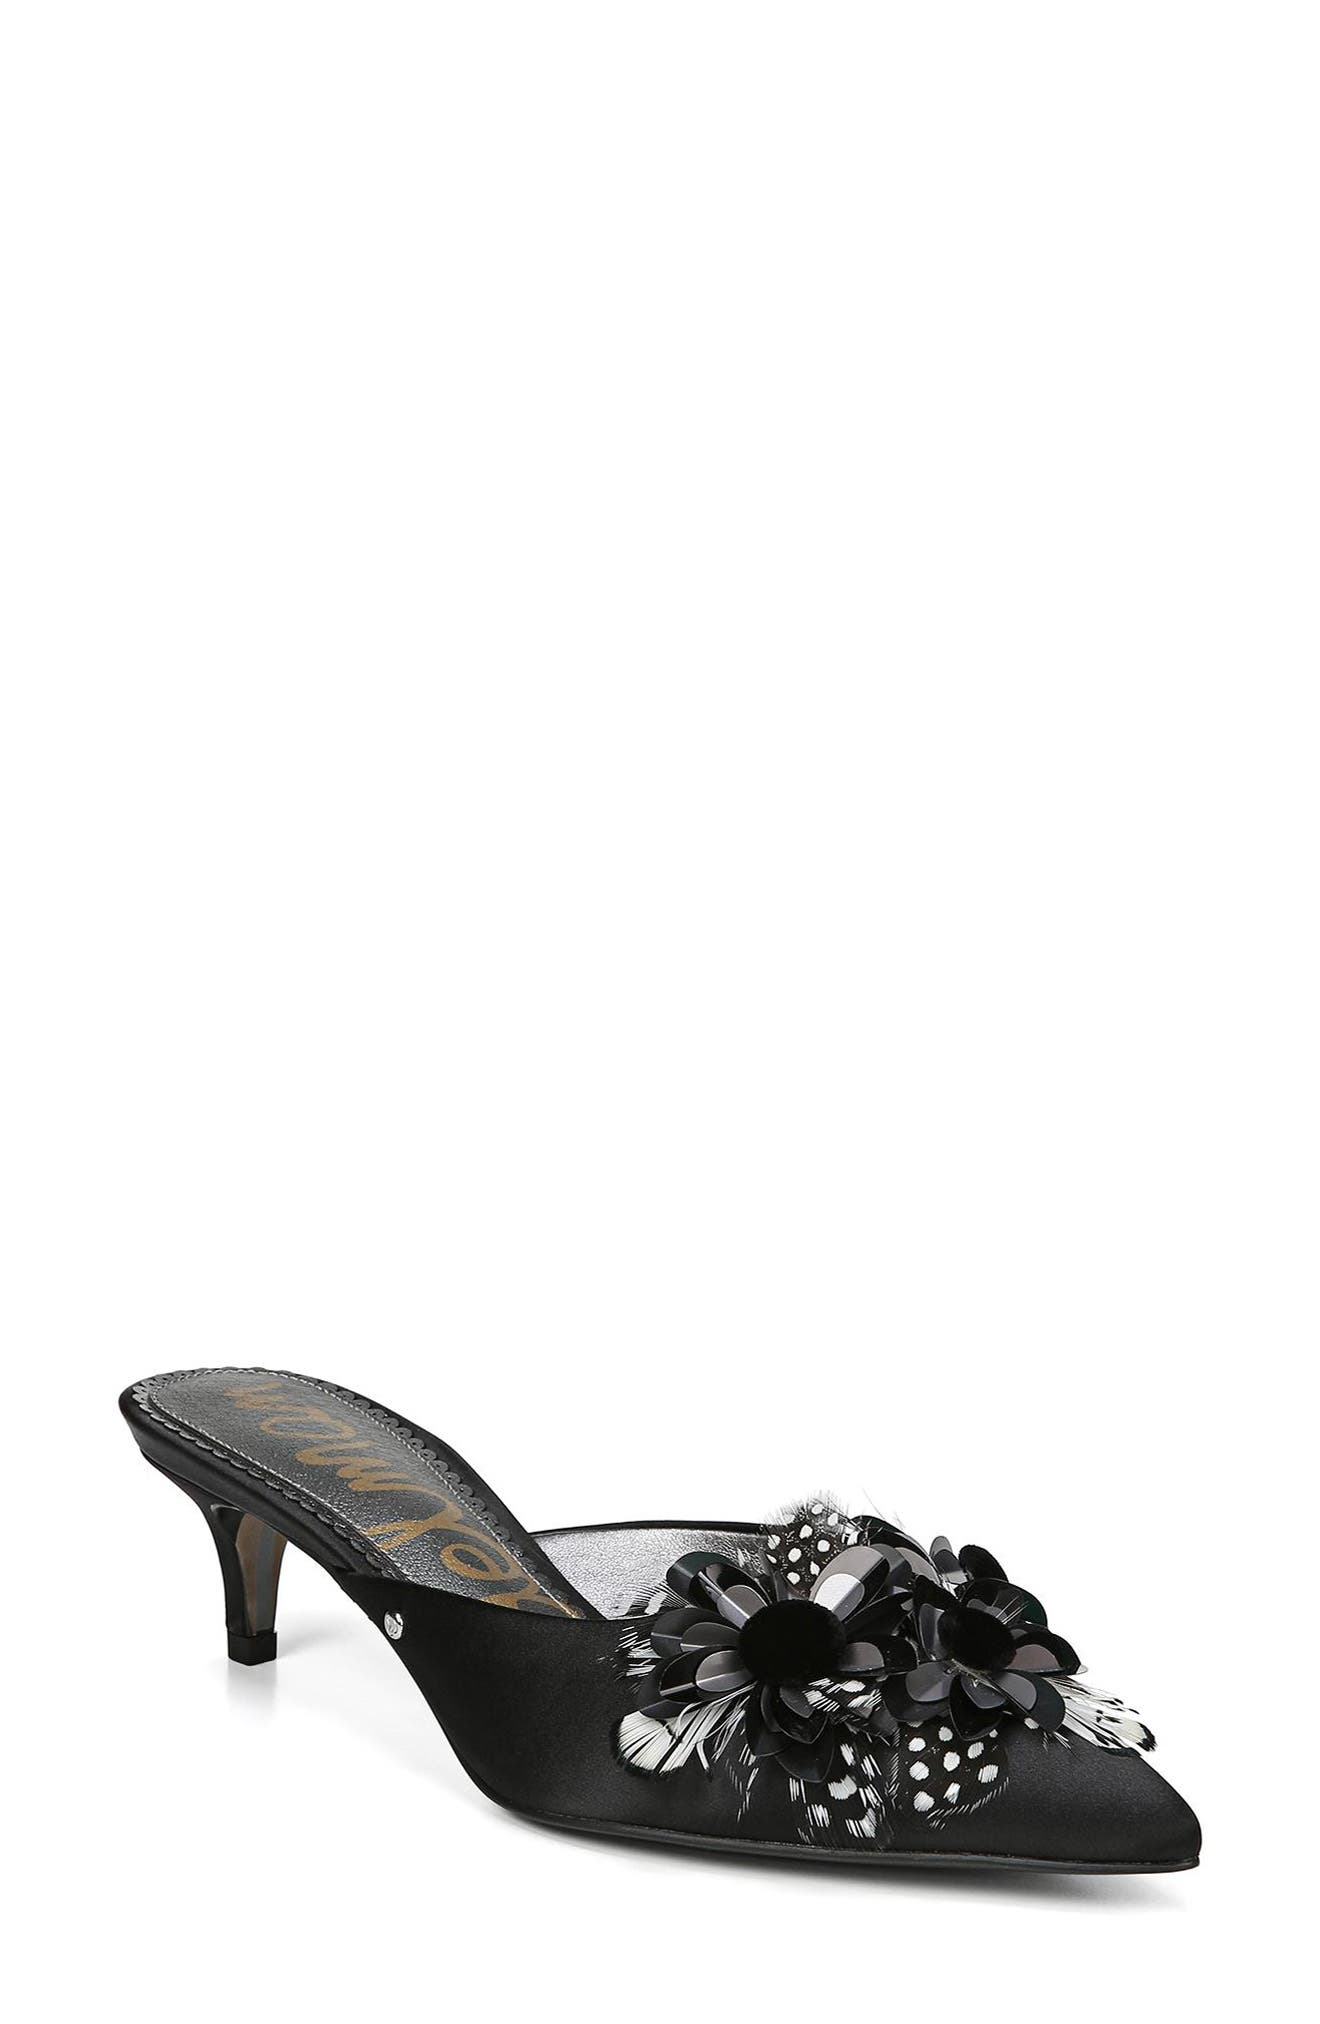 Dorcy Embellished Mule,                             Main thumbnail 1, color,                             002